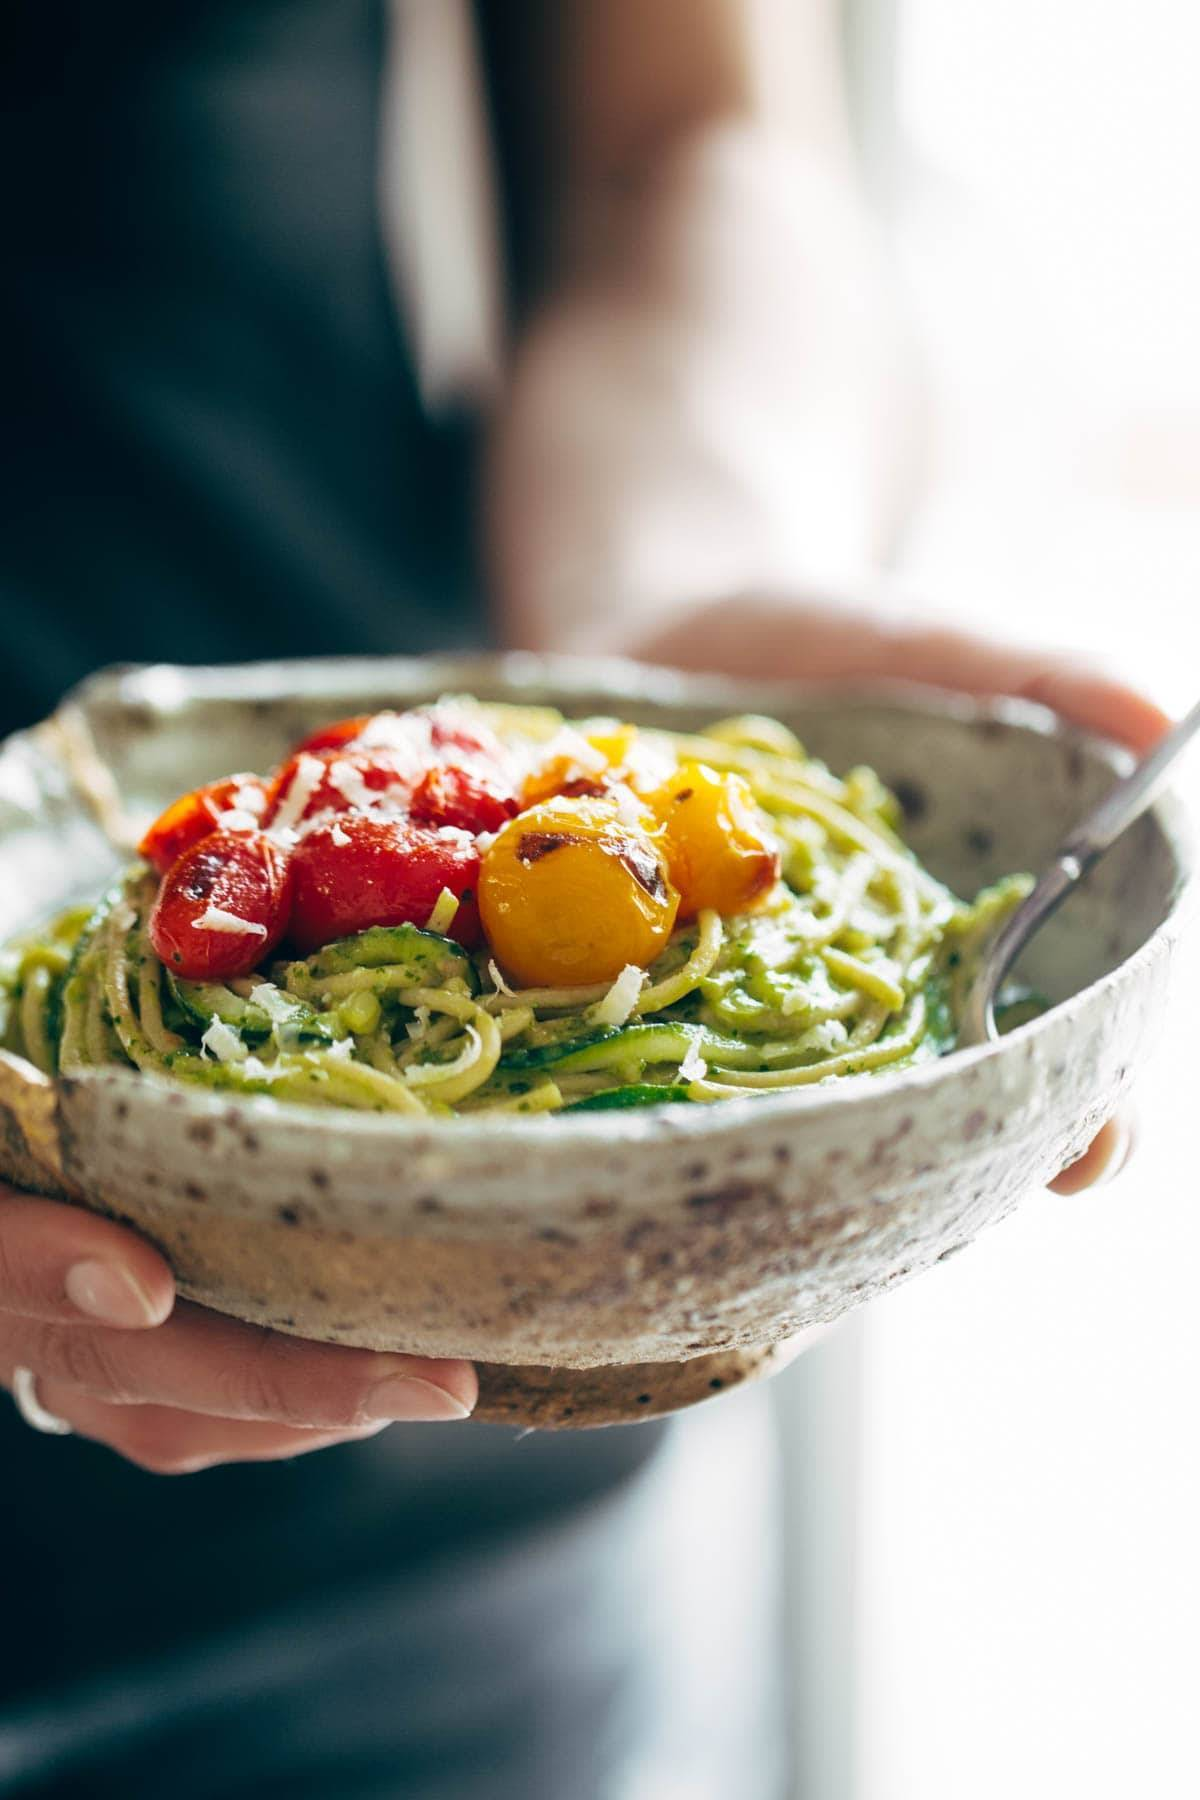 Burst Tomato and Zucchini Spaghetti tossed with a simple, creamy, vegan avocado sauce. This healthy recipe is ready in 30 minutes! | pinchofyum.com